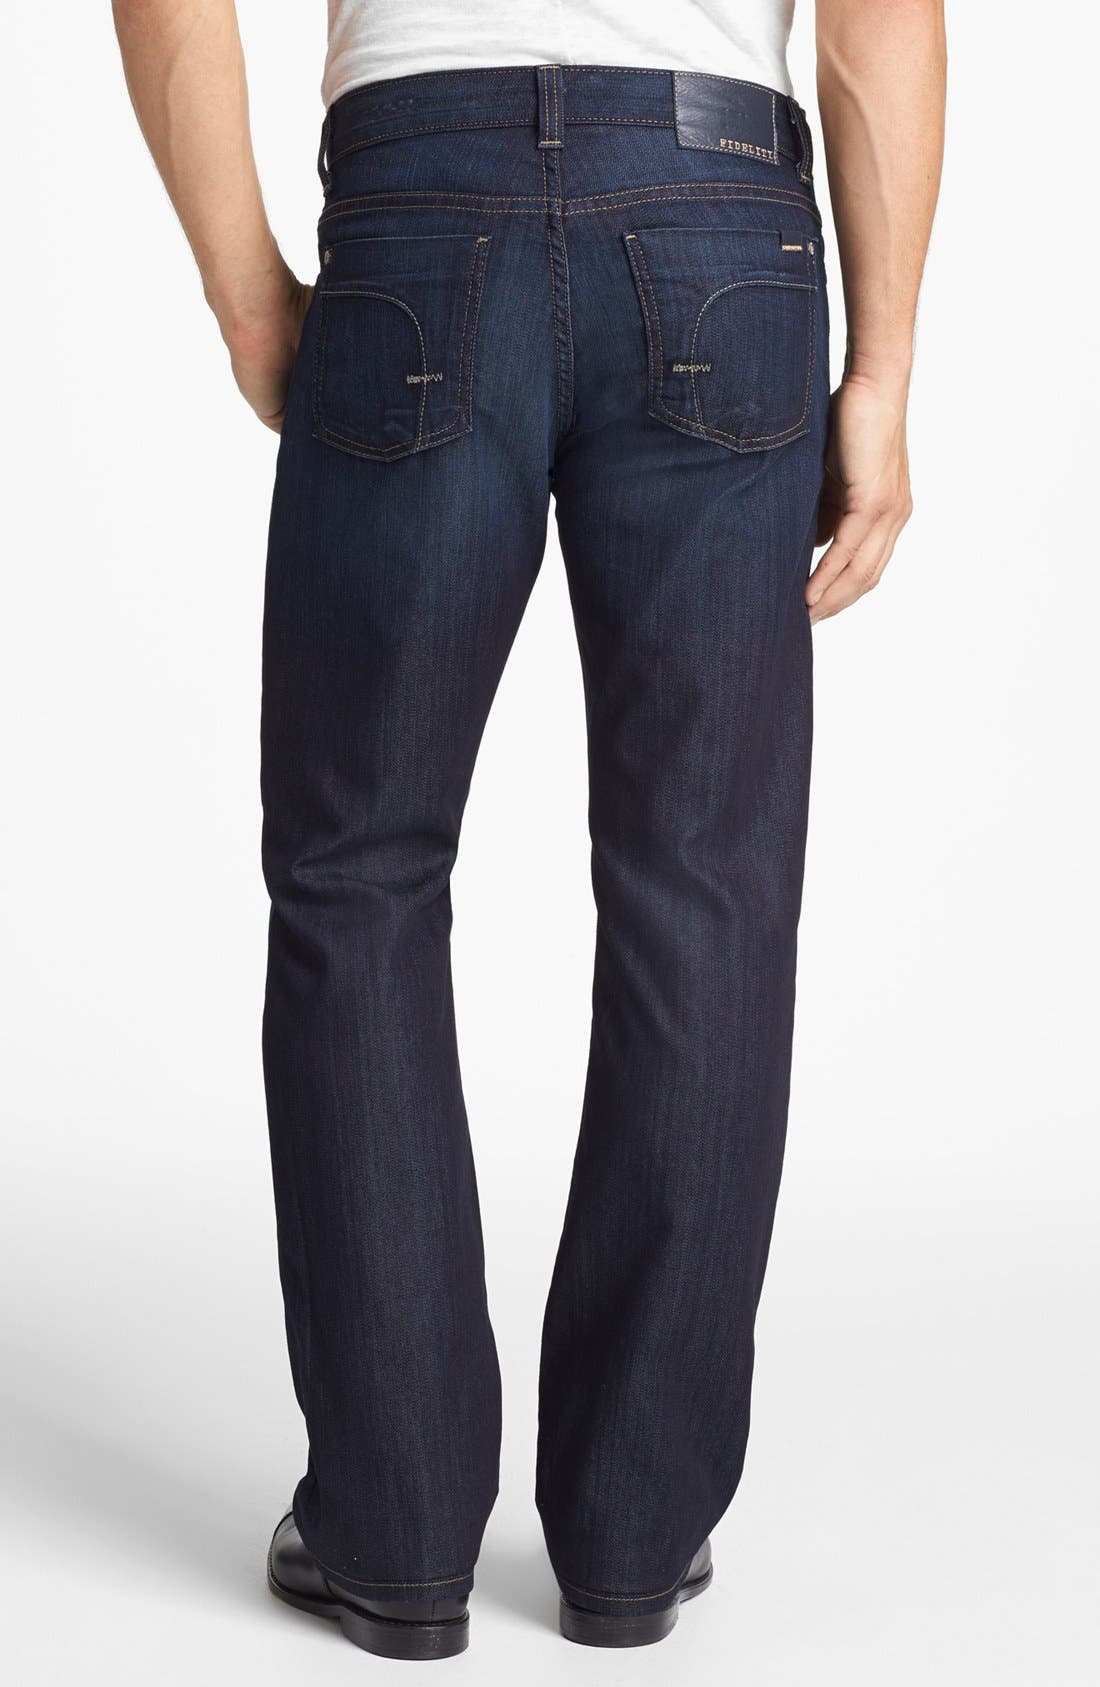 50-11 Relaxed Fit Jeans,                             Alternate thumbnail 3, color,                             CALVARY